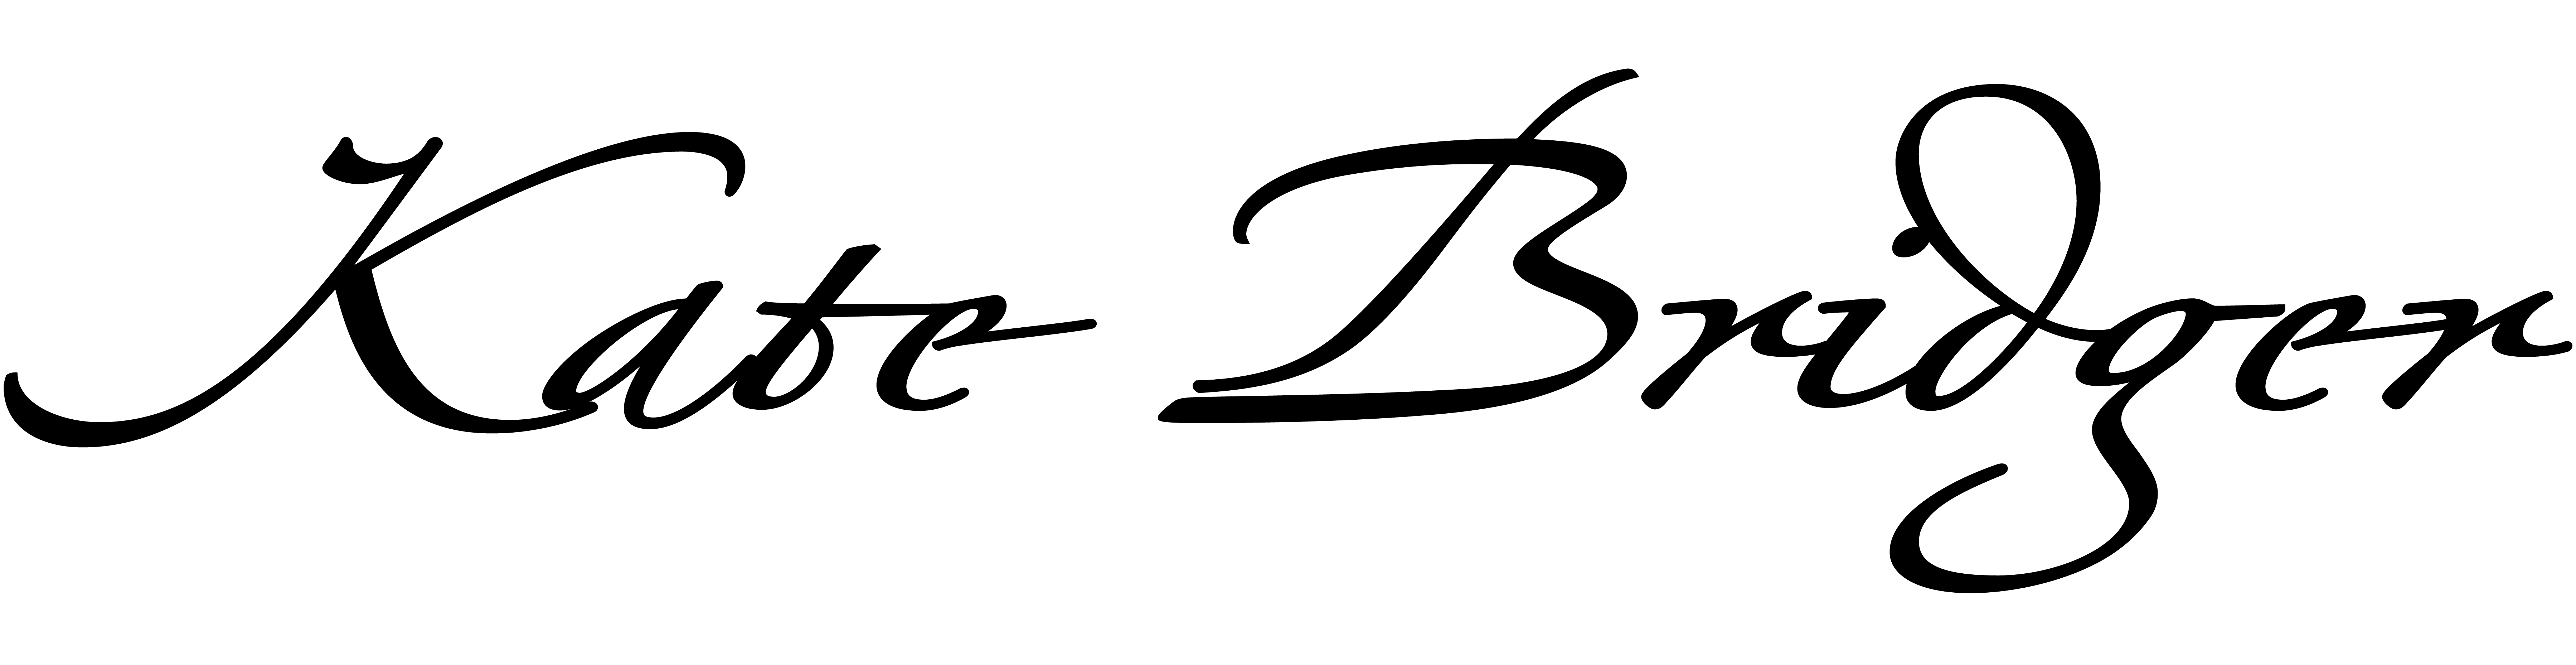 Kate Bridger's Signature